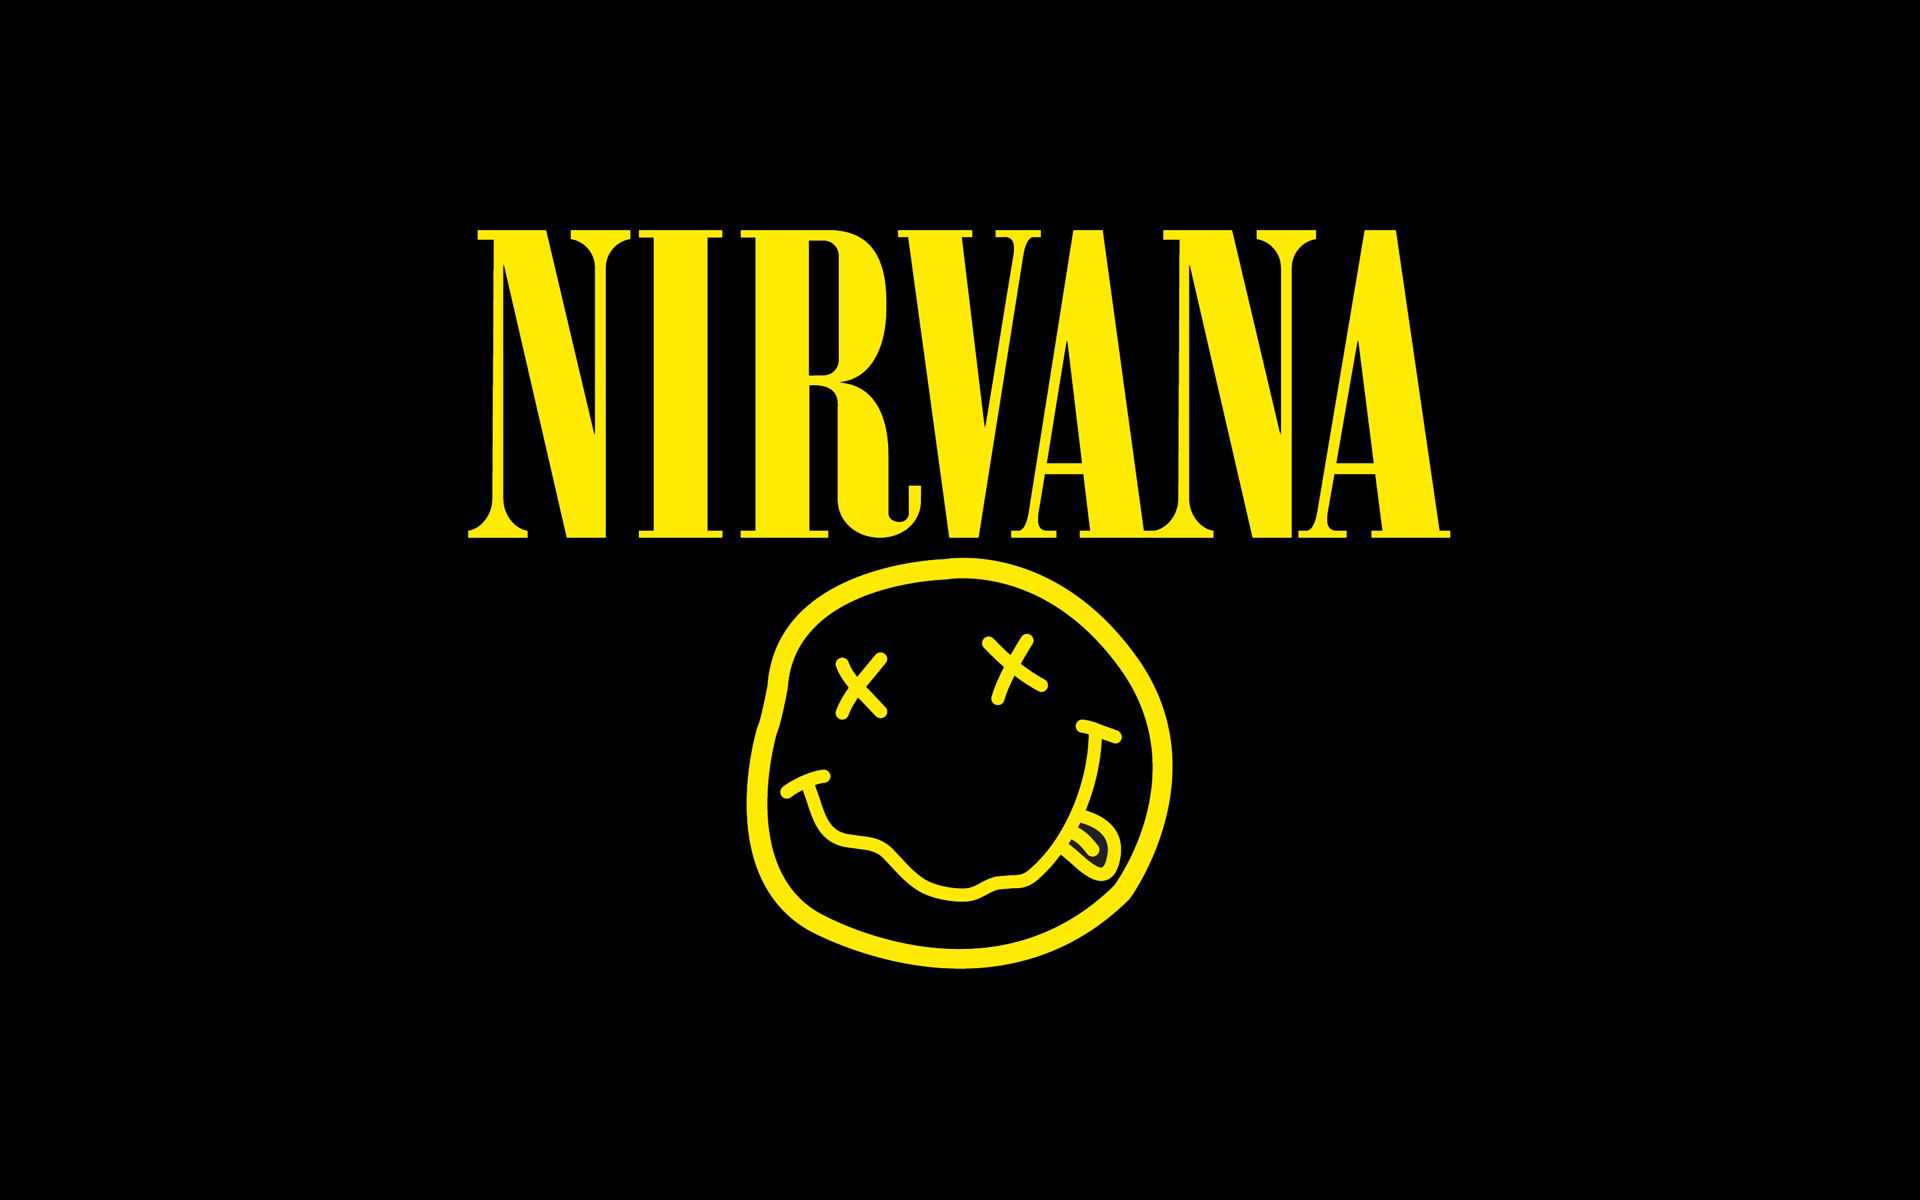 the band nirvana Biography nirvana formed in 1987 in aberdeen, washington, usa they signed to independent label sub pop records and released their first album, bleach in june 1989 the band moved to olympia in 1989 and eventually seattle in 1990, trying out many drummers and eventually settling first on chad channing and eventually dave grohl.